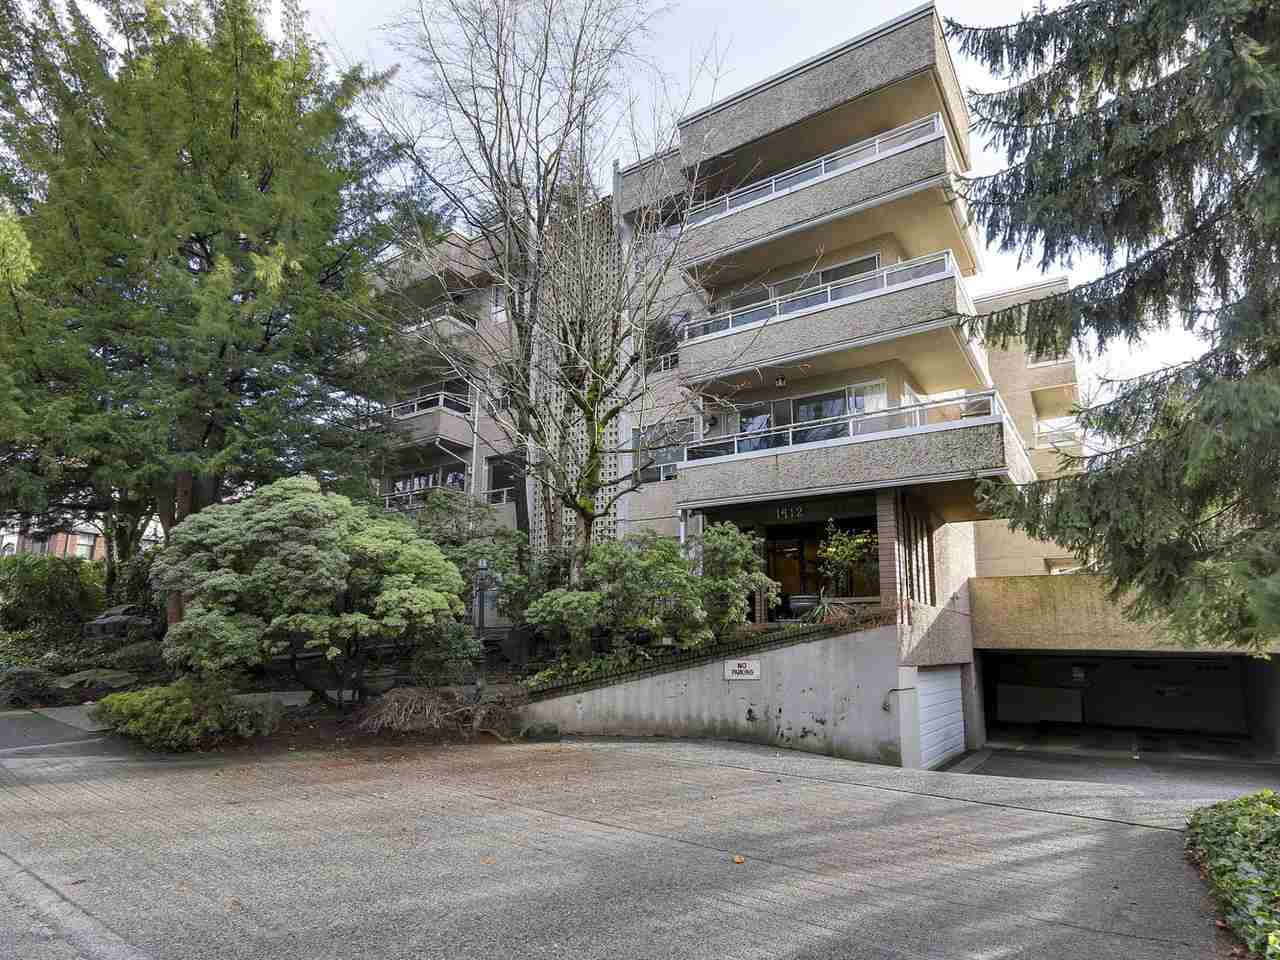 Main Photo: 306 1412 W 14TH AVENUE in Vancouver: Fairview VW Condo for sale (Vancouver West)  : MLS® # R2133238